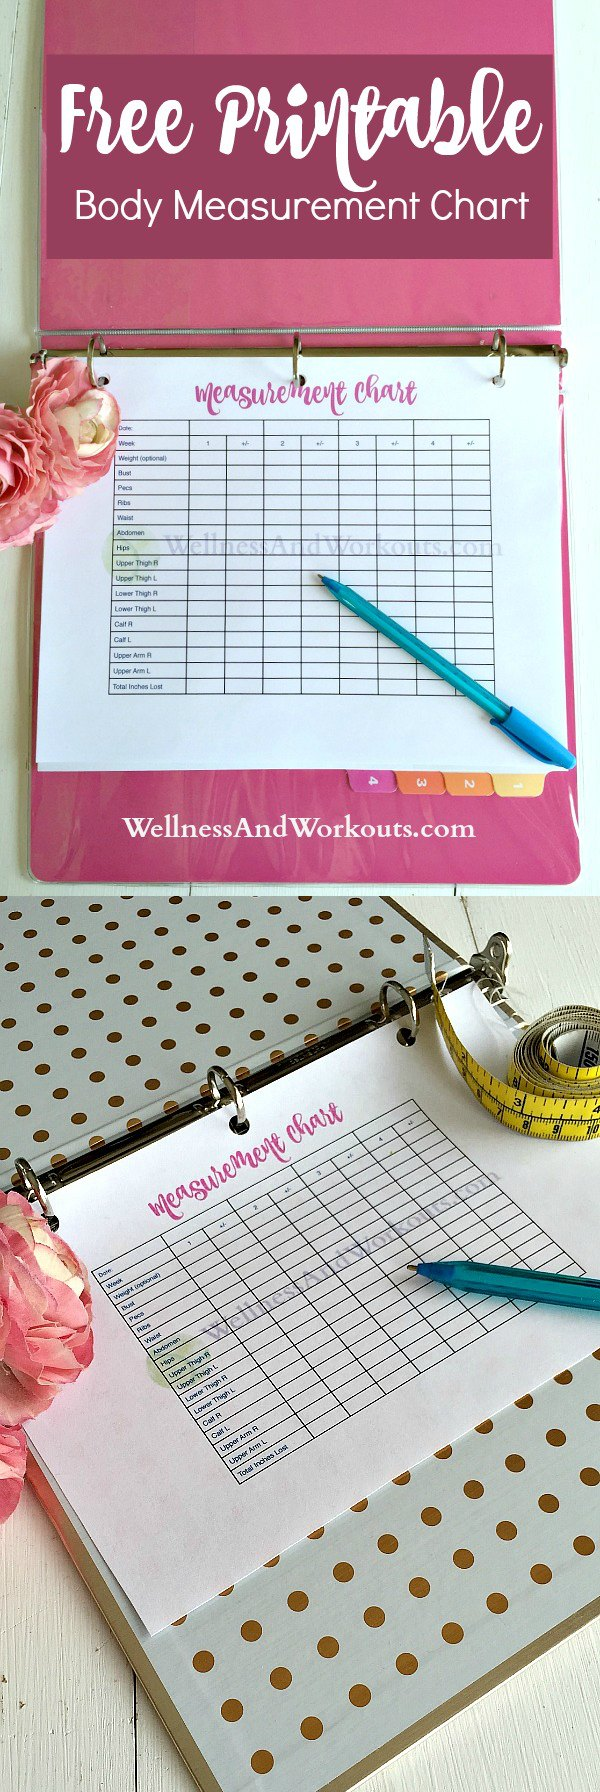 This free, blank, printable body measurement chart is to help you get--and stay motivated when on a regular exercise routine. Great with T-Tapp workouts, measuring inches is better than weight loss.